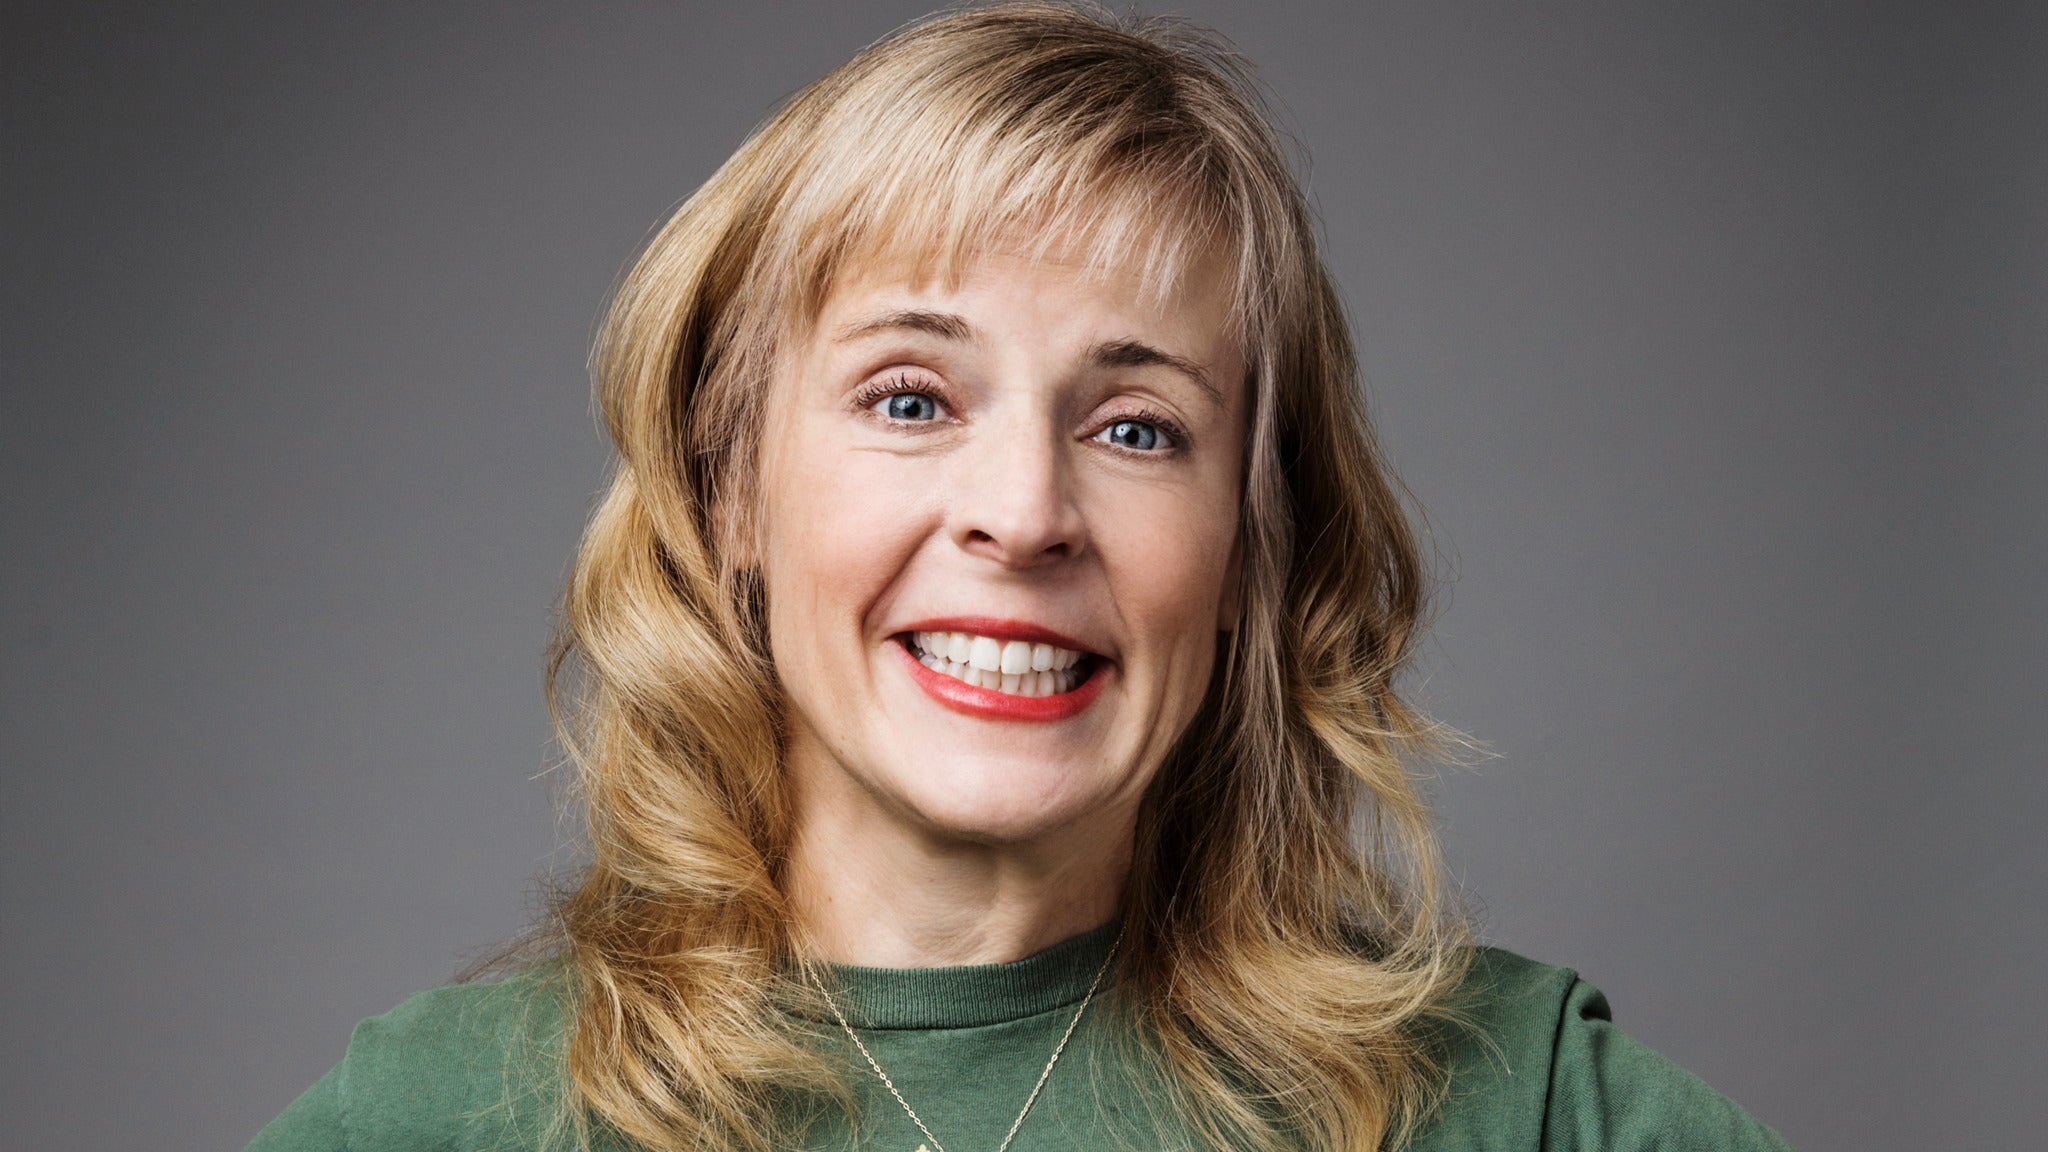 SORRY, THIS EVENT IS NO LONGER ACTIVE<br>Maria Bamford at Brea Improv - Brea, CA 92821